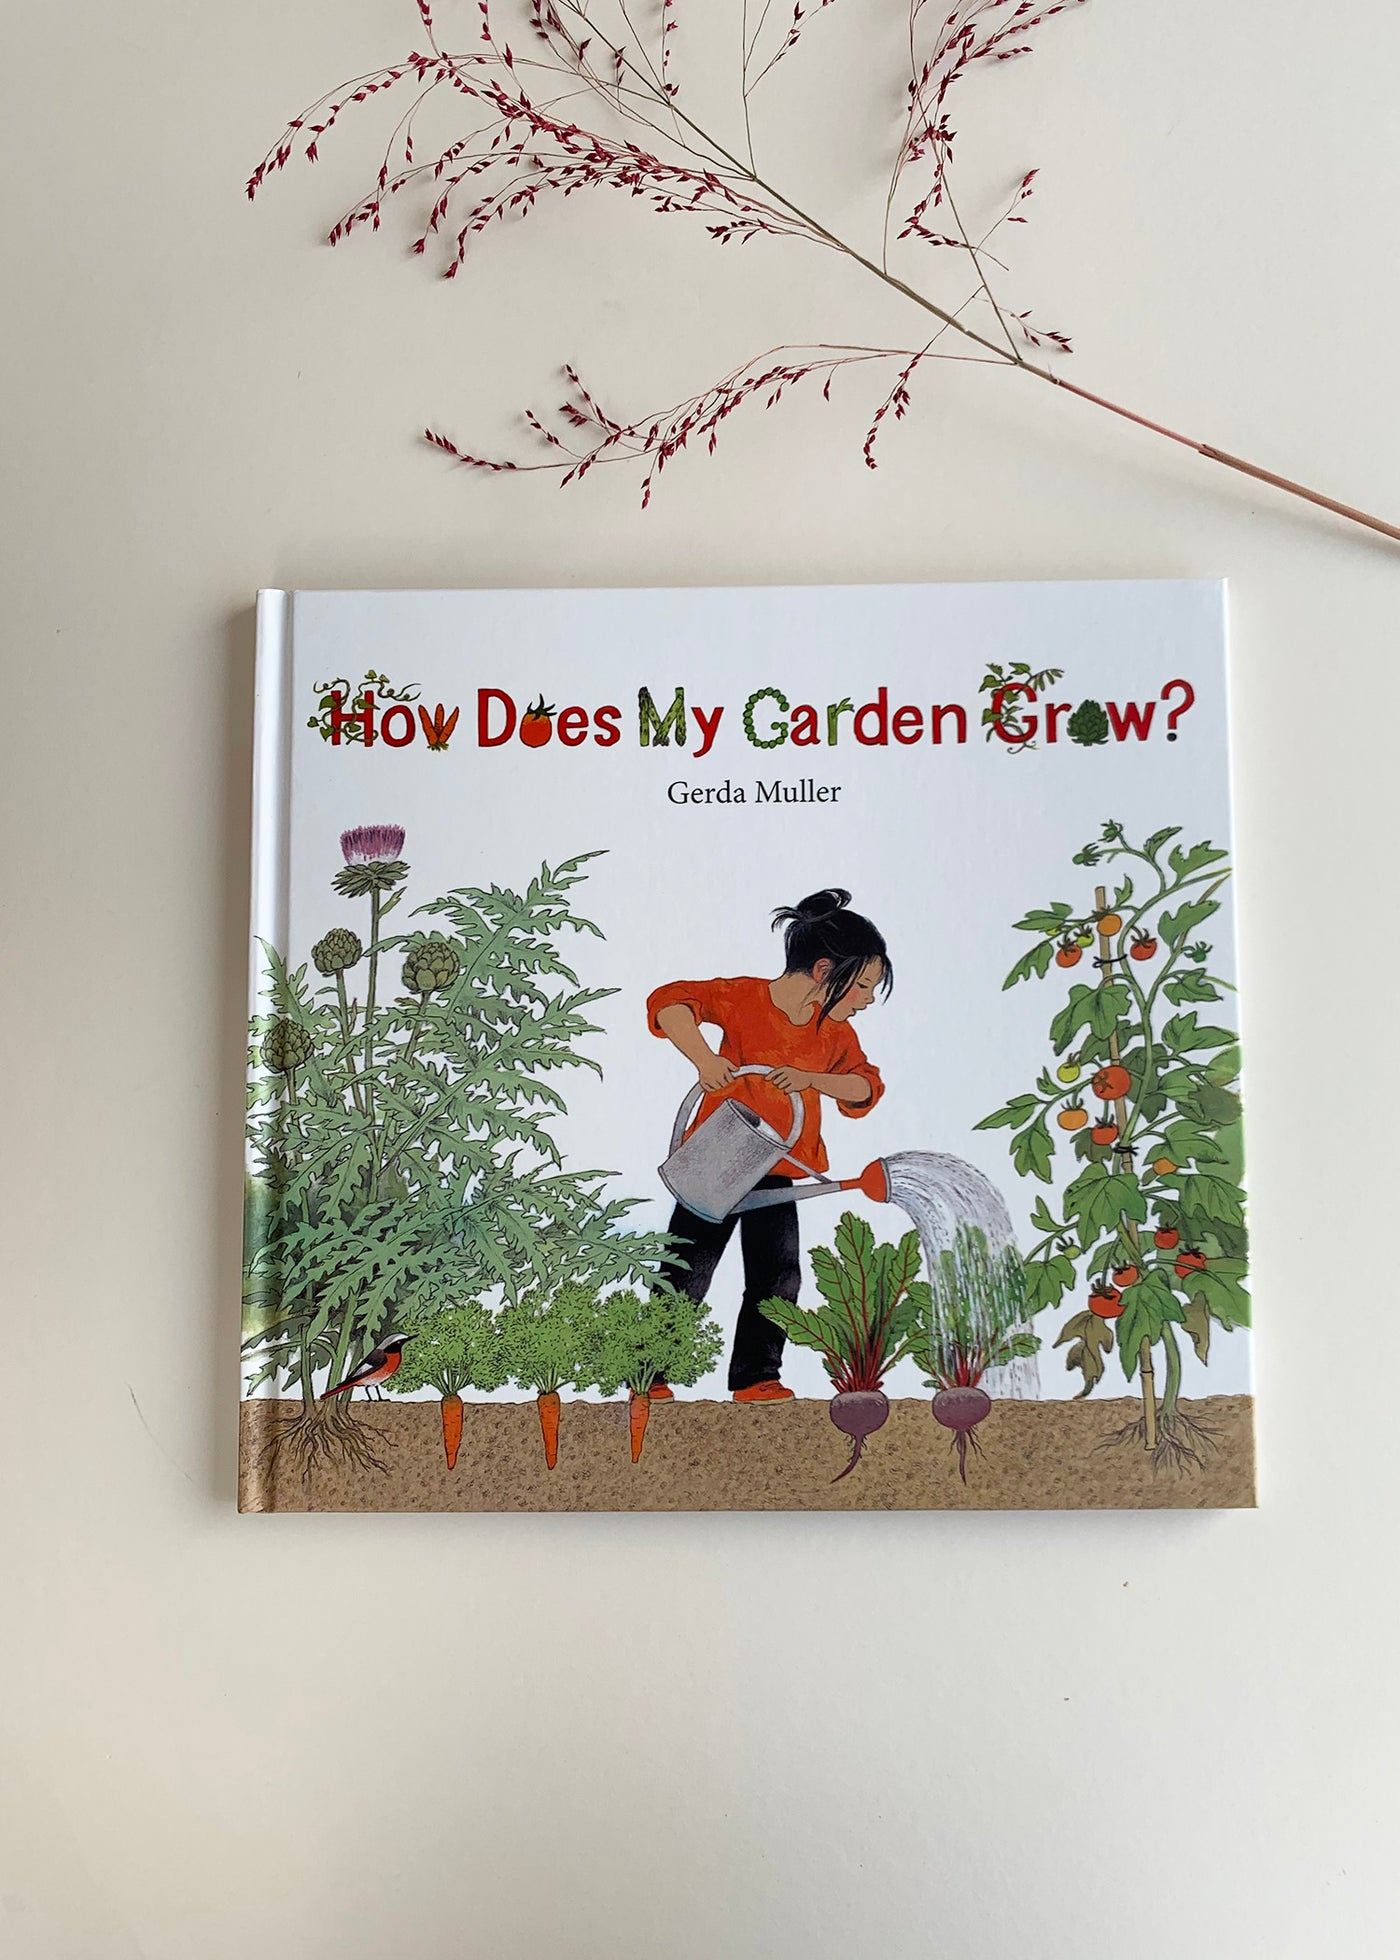 How Does My Garden Grow (Hardcover) by Gerda Muller